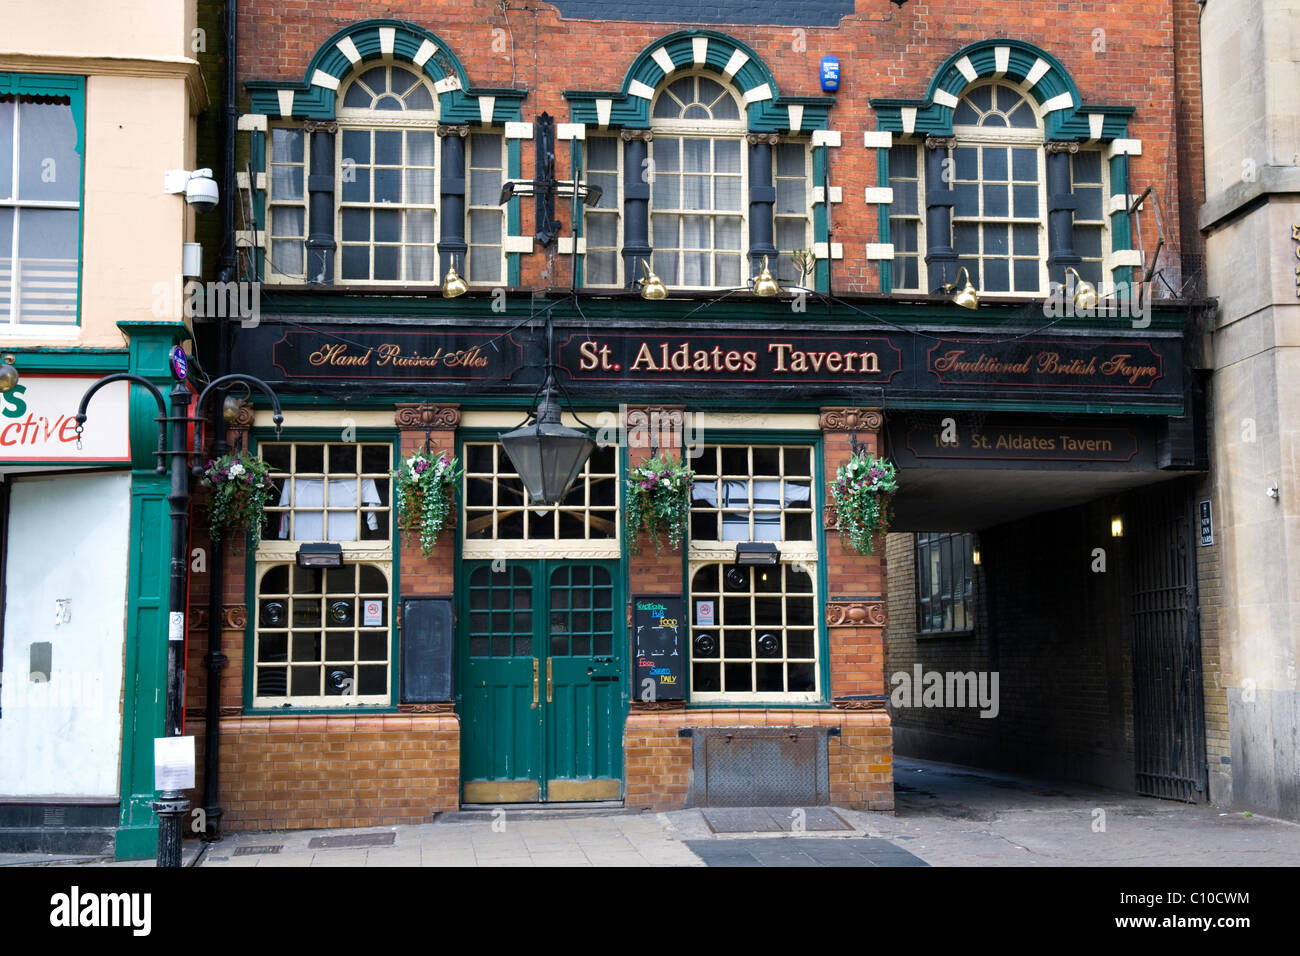 St Aldates Tavern in Oxford, England, a Traditional English Public House - Stock Image